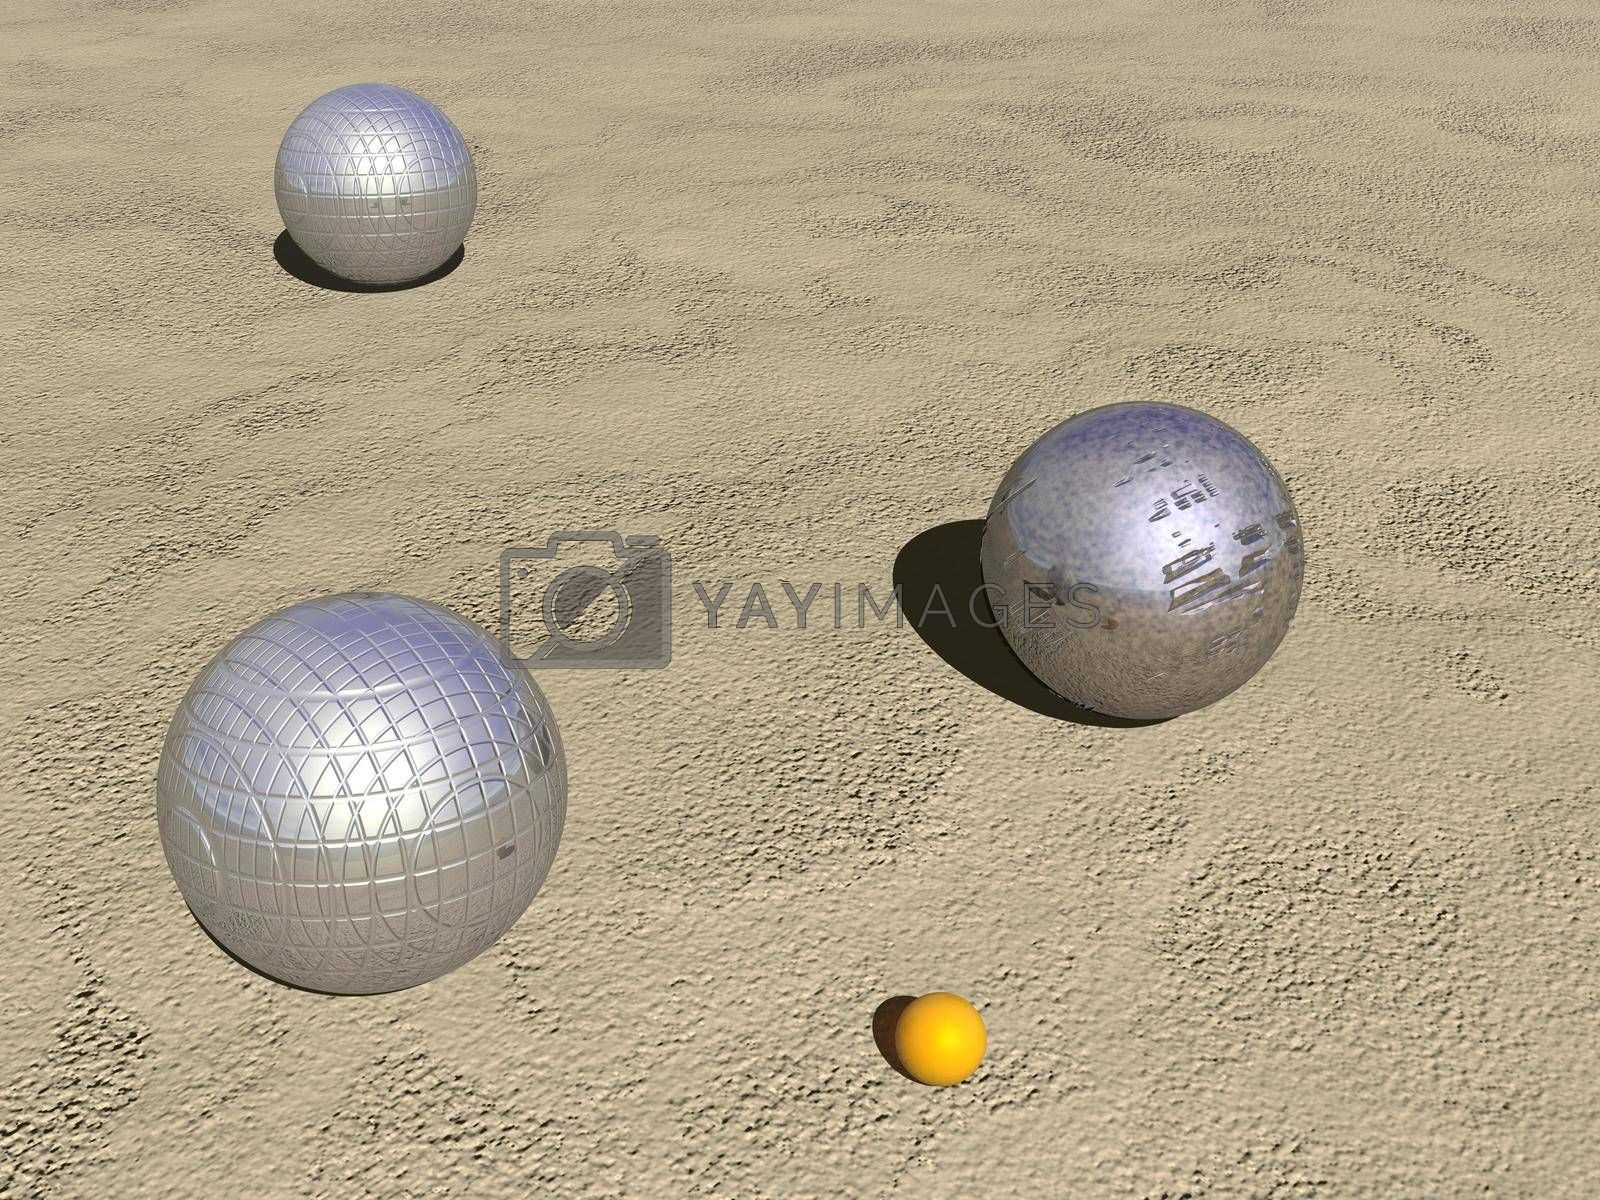 Royalty free image of Petanque game balls - 3D render by Elenaphotos21